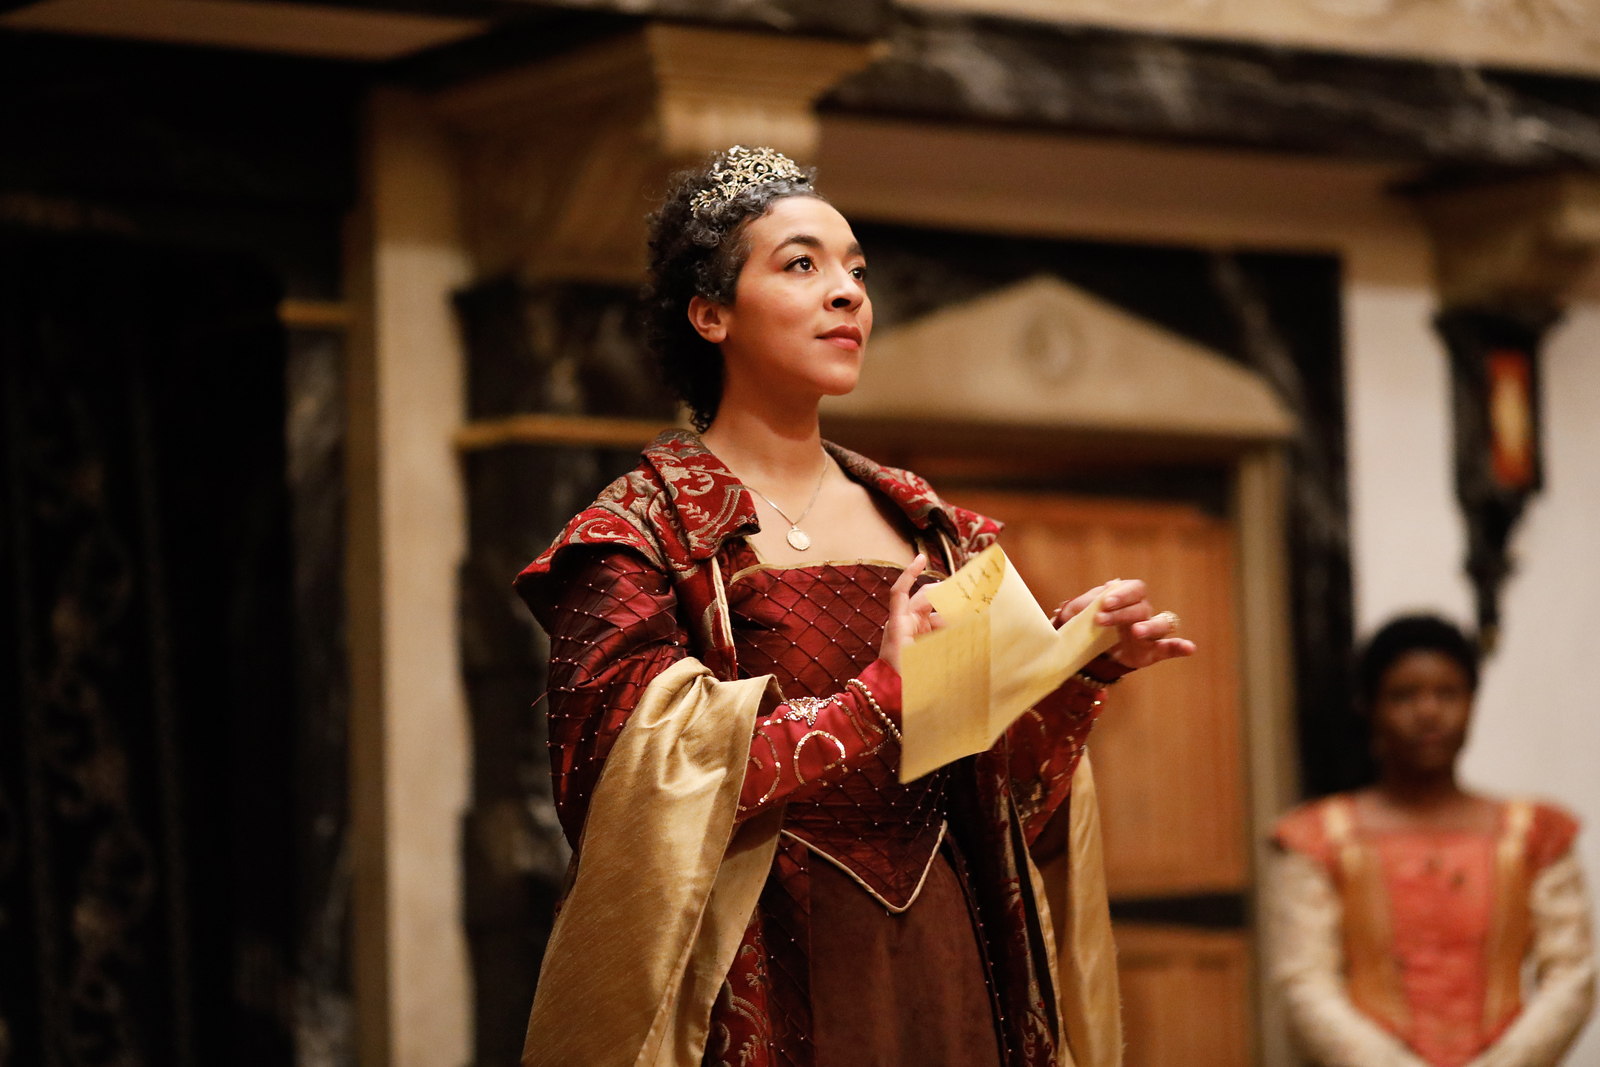 Jessika Williams as Gertrude in HAMLET.  Photo by Lindsey Walters.